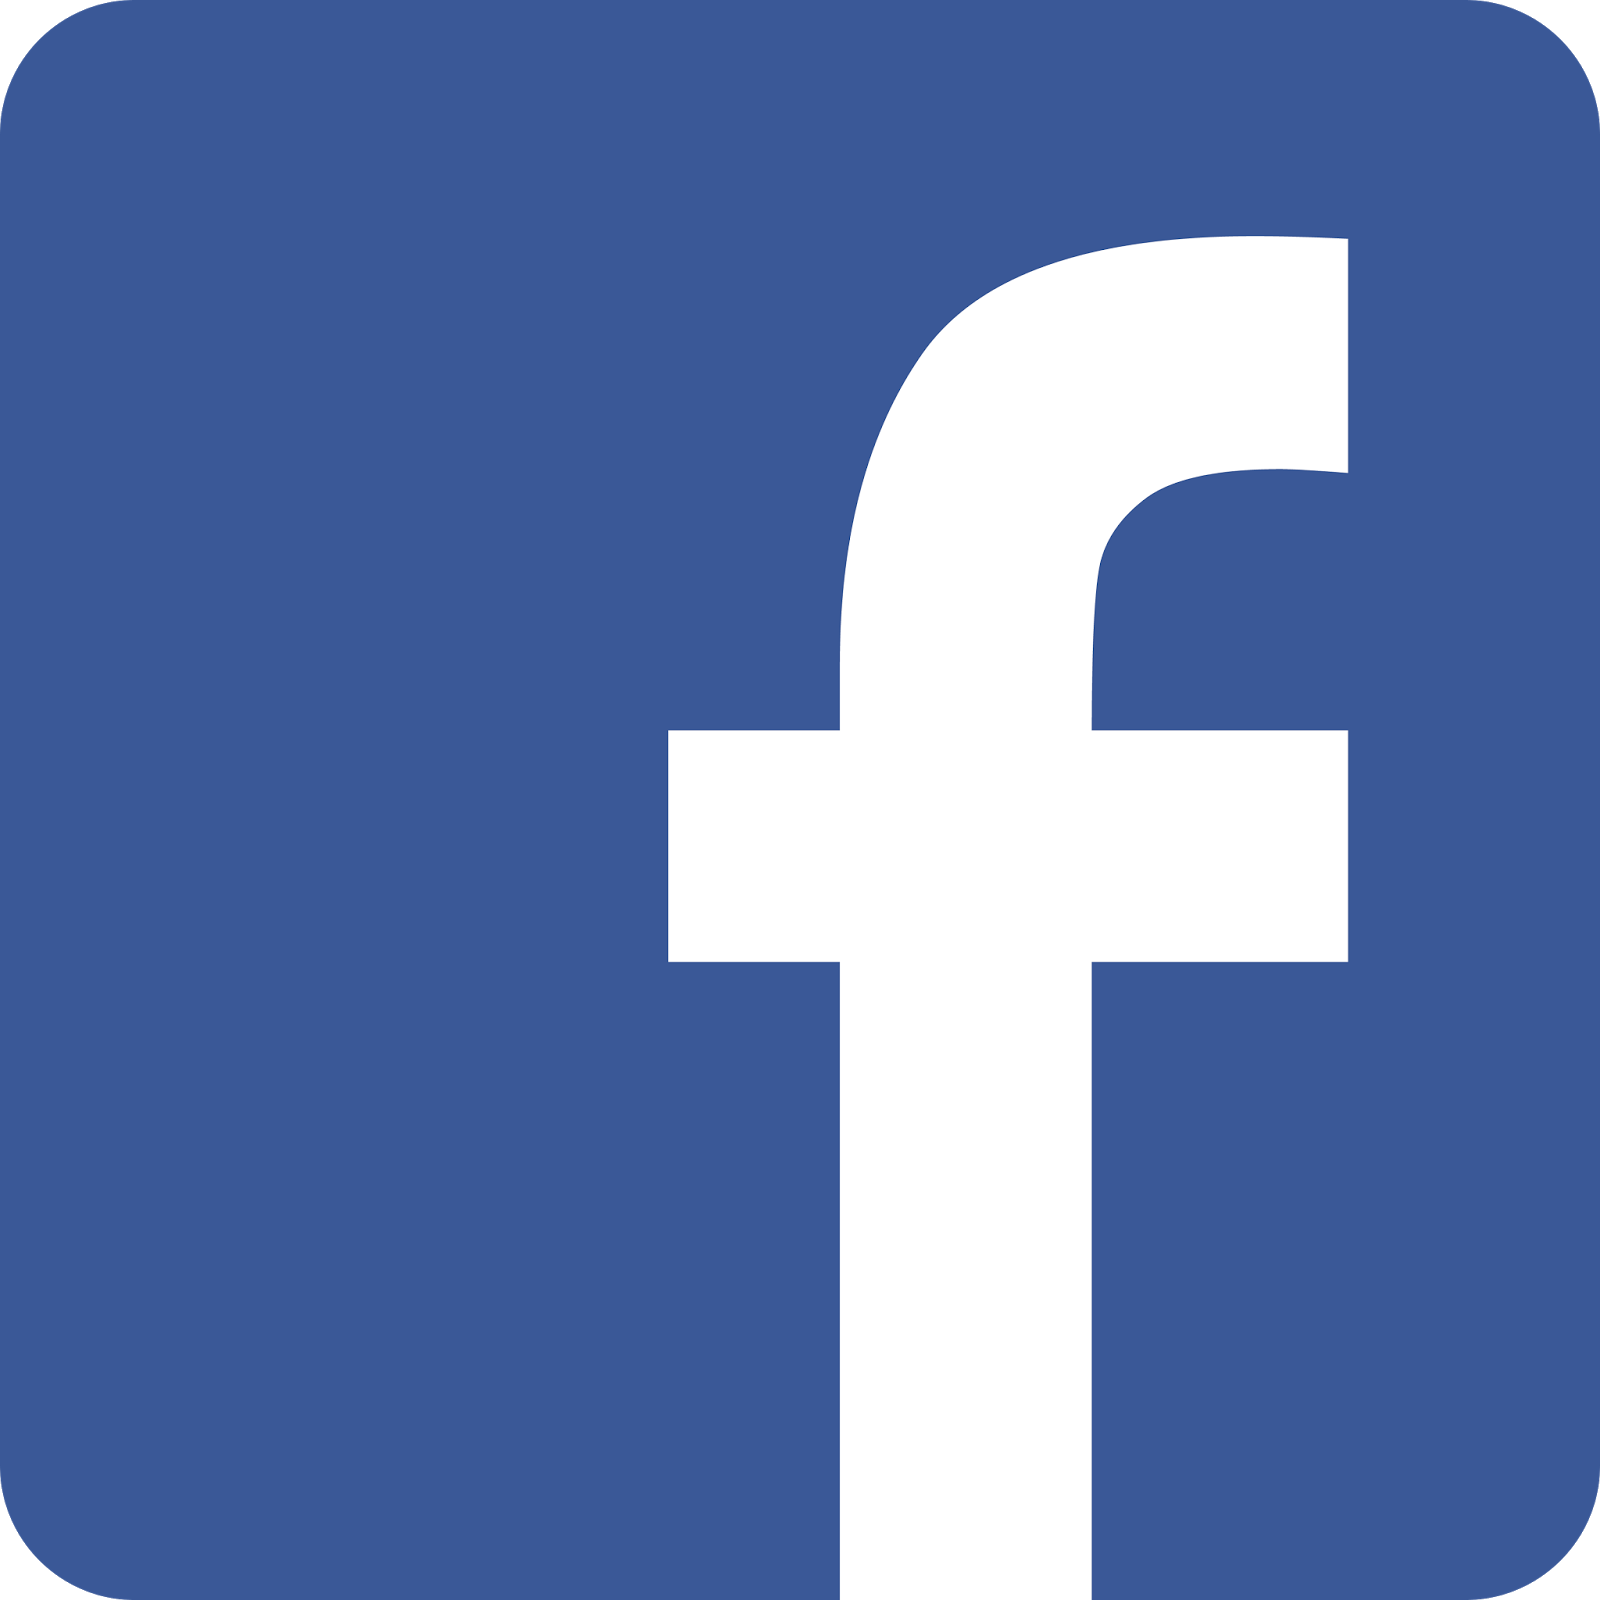 facebook-transparent-logo-png-0.png